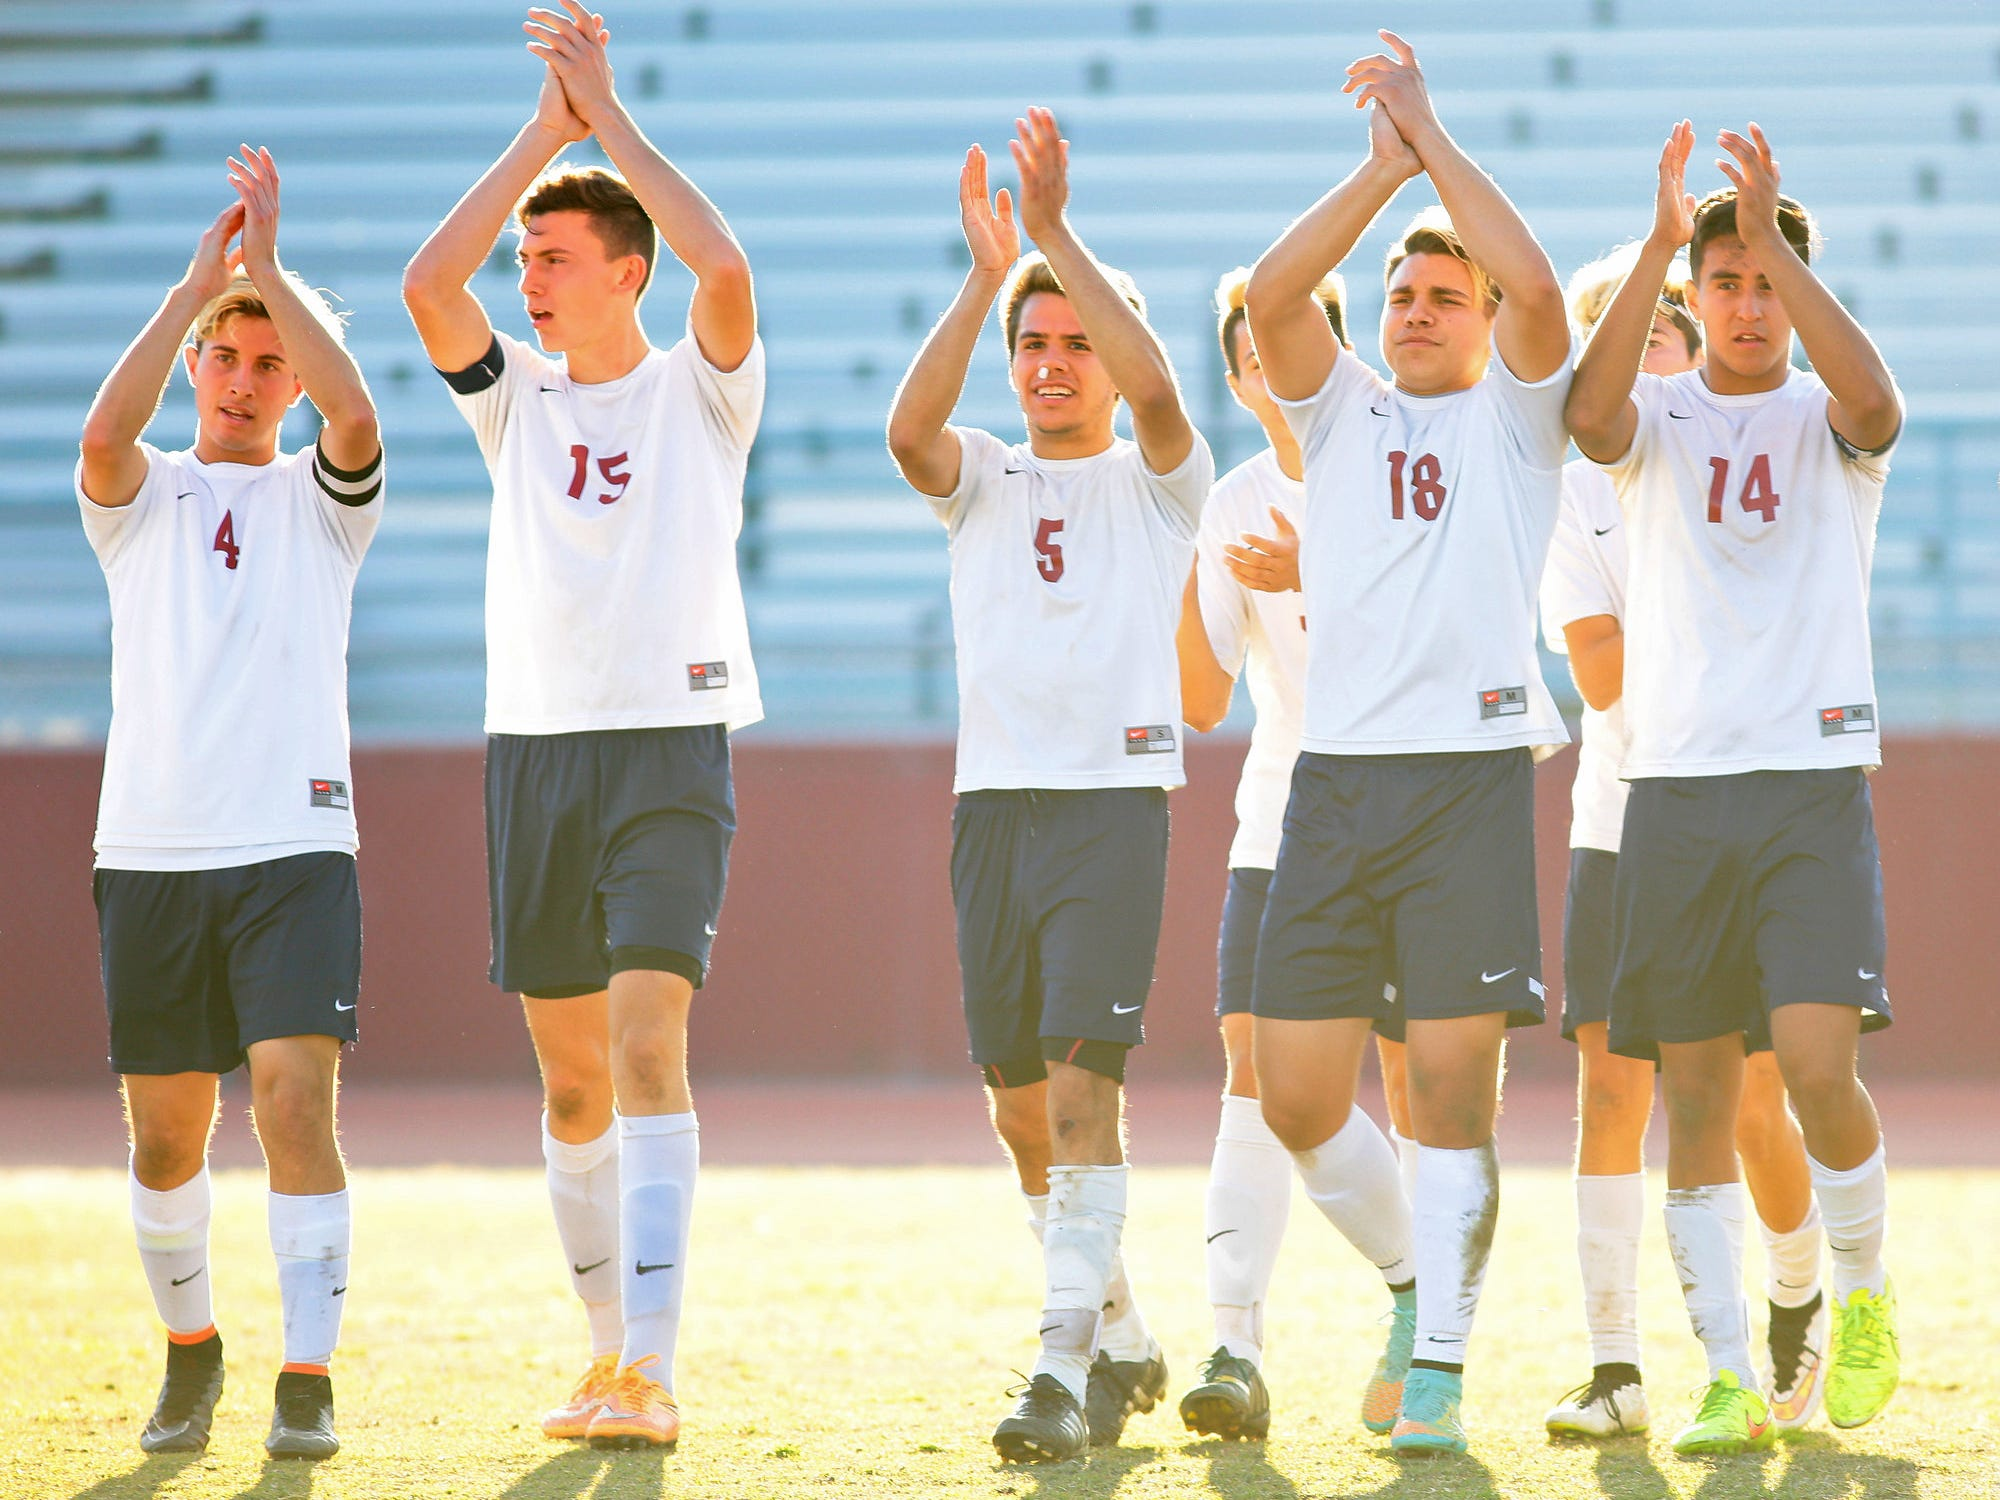 La Quinta players senior Isaac Sanchez (4), junior Daniel Alexander (15), senior Jesus Avalos (5), senior Aaron Mendoza (18), and junior Alexis Vargas (14) turn toward the crowd and clap while celebrating the Blackhawks' 1-0 win in a CIF semifinal playoff game Tuesday afternoon at home against Sunny Hills.